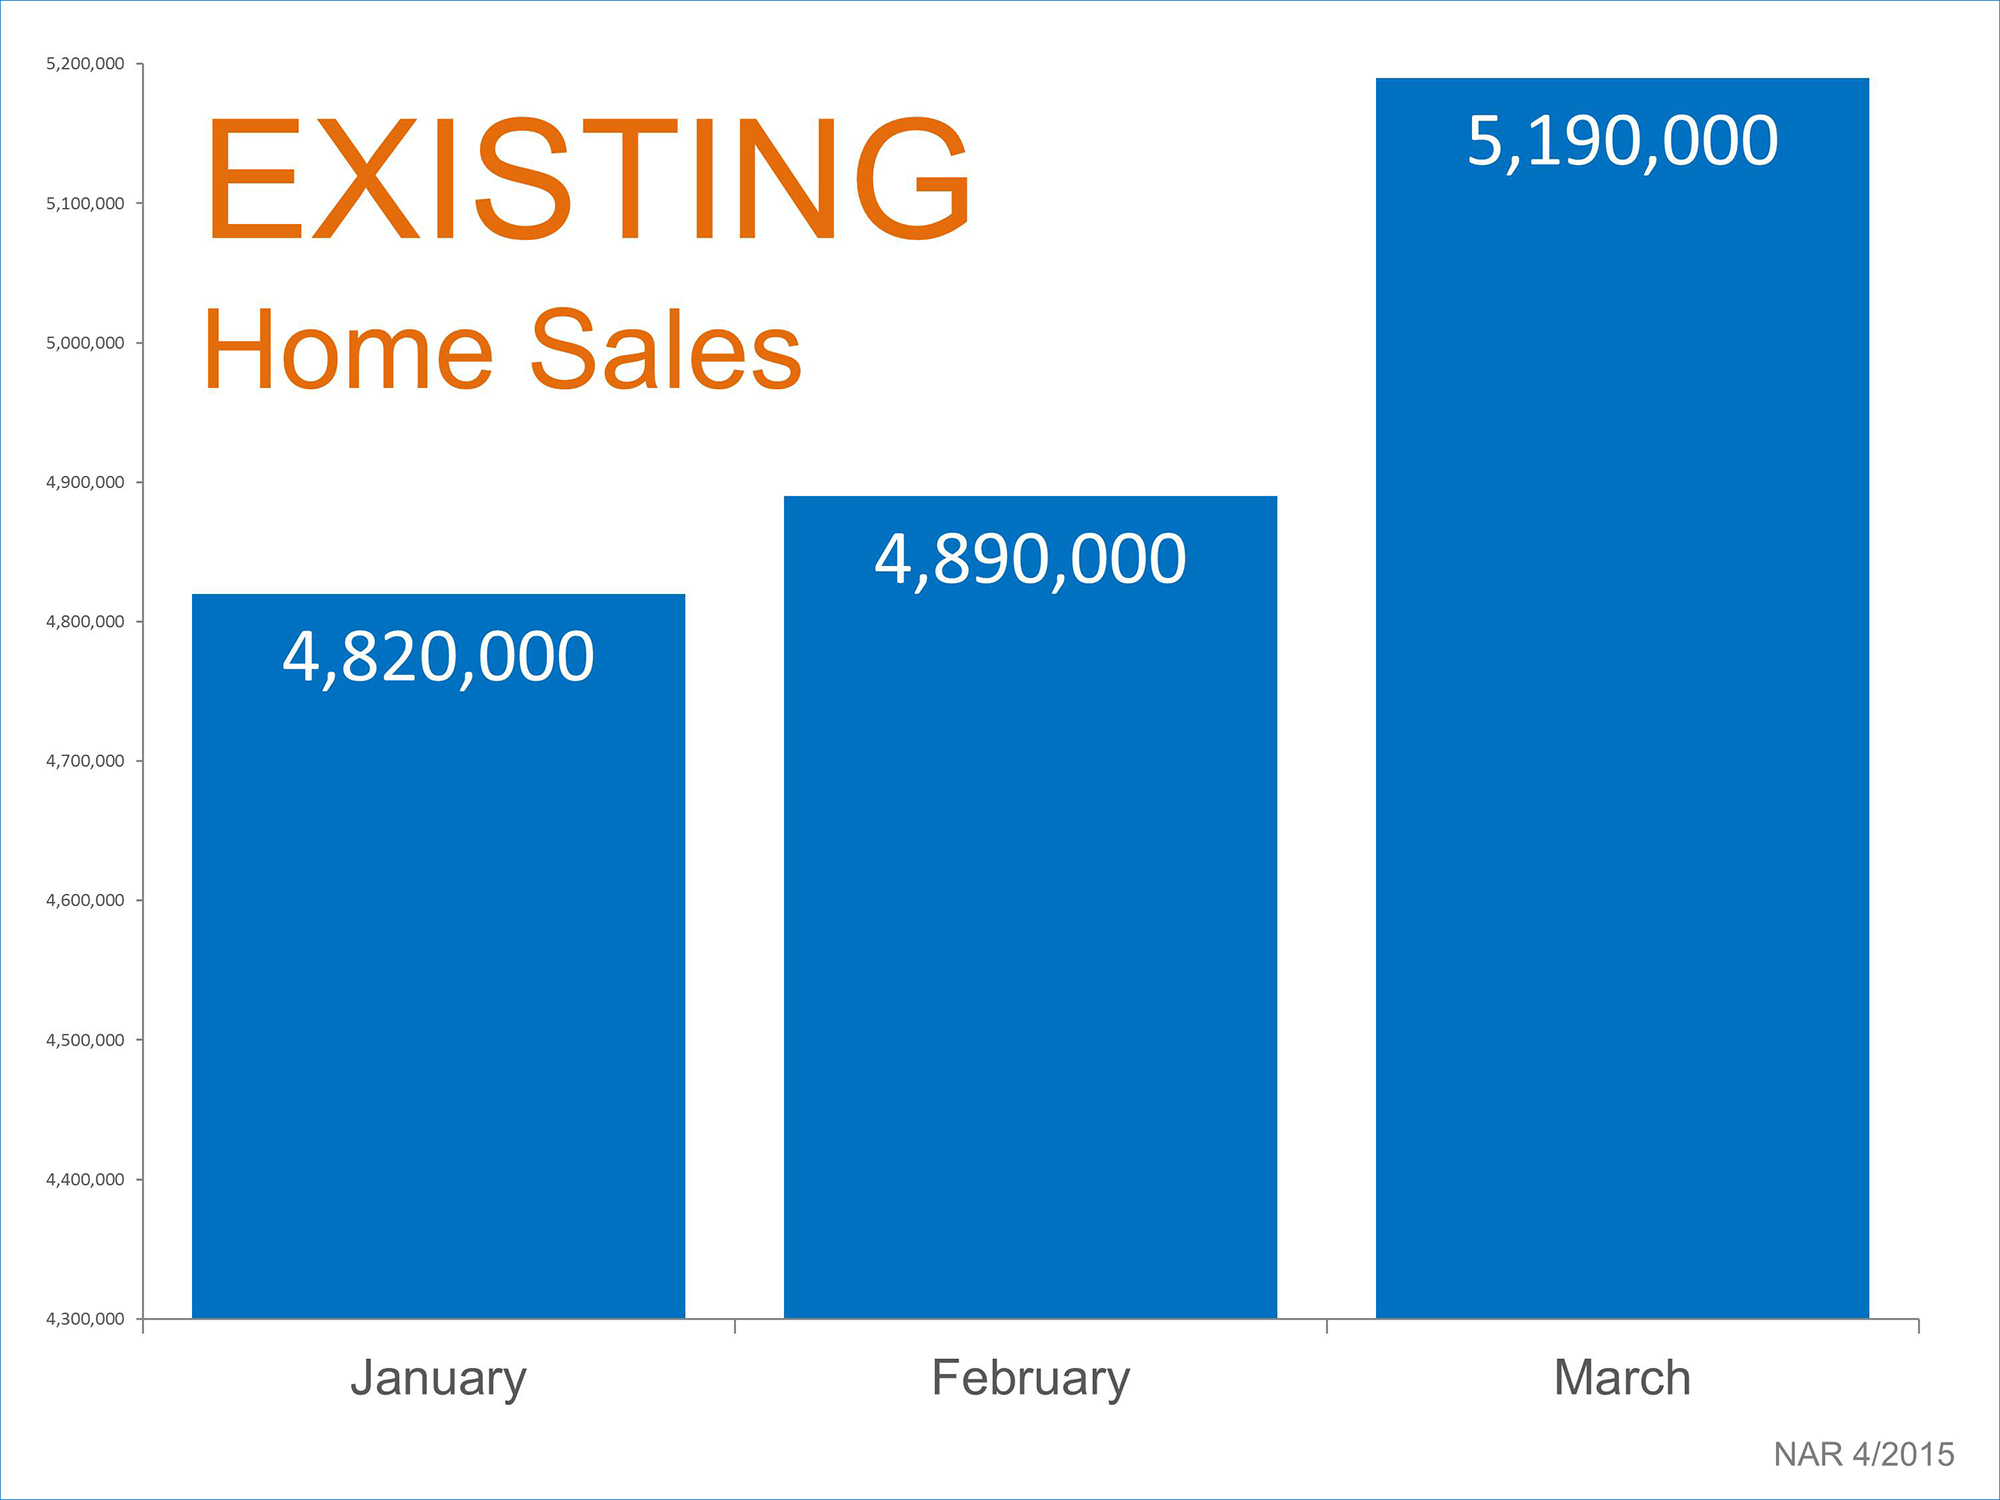 Existing Home Sales | Simplifying The Market